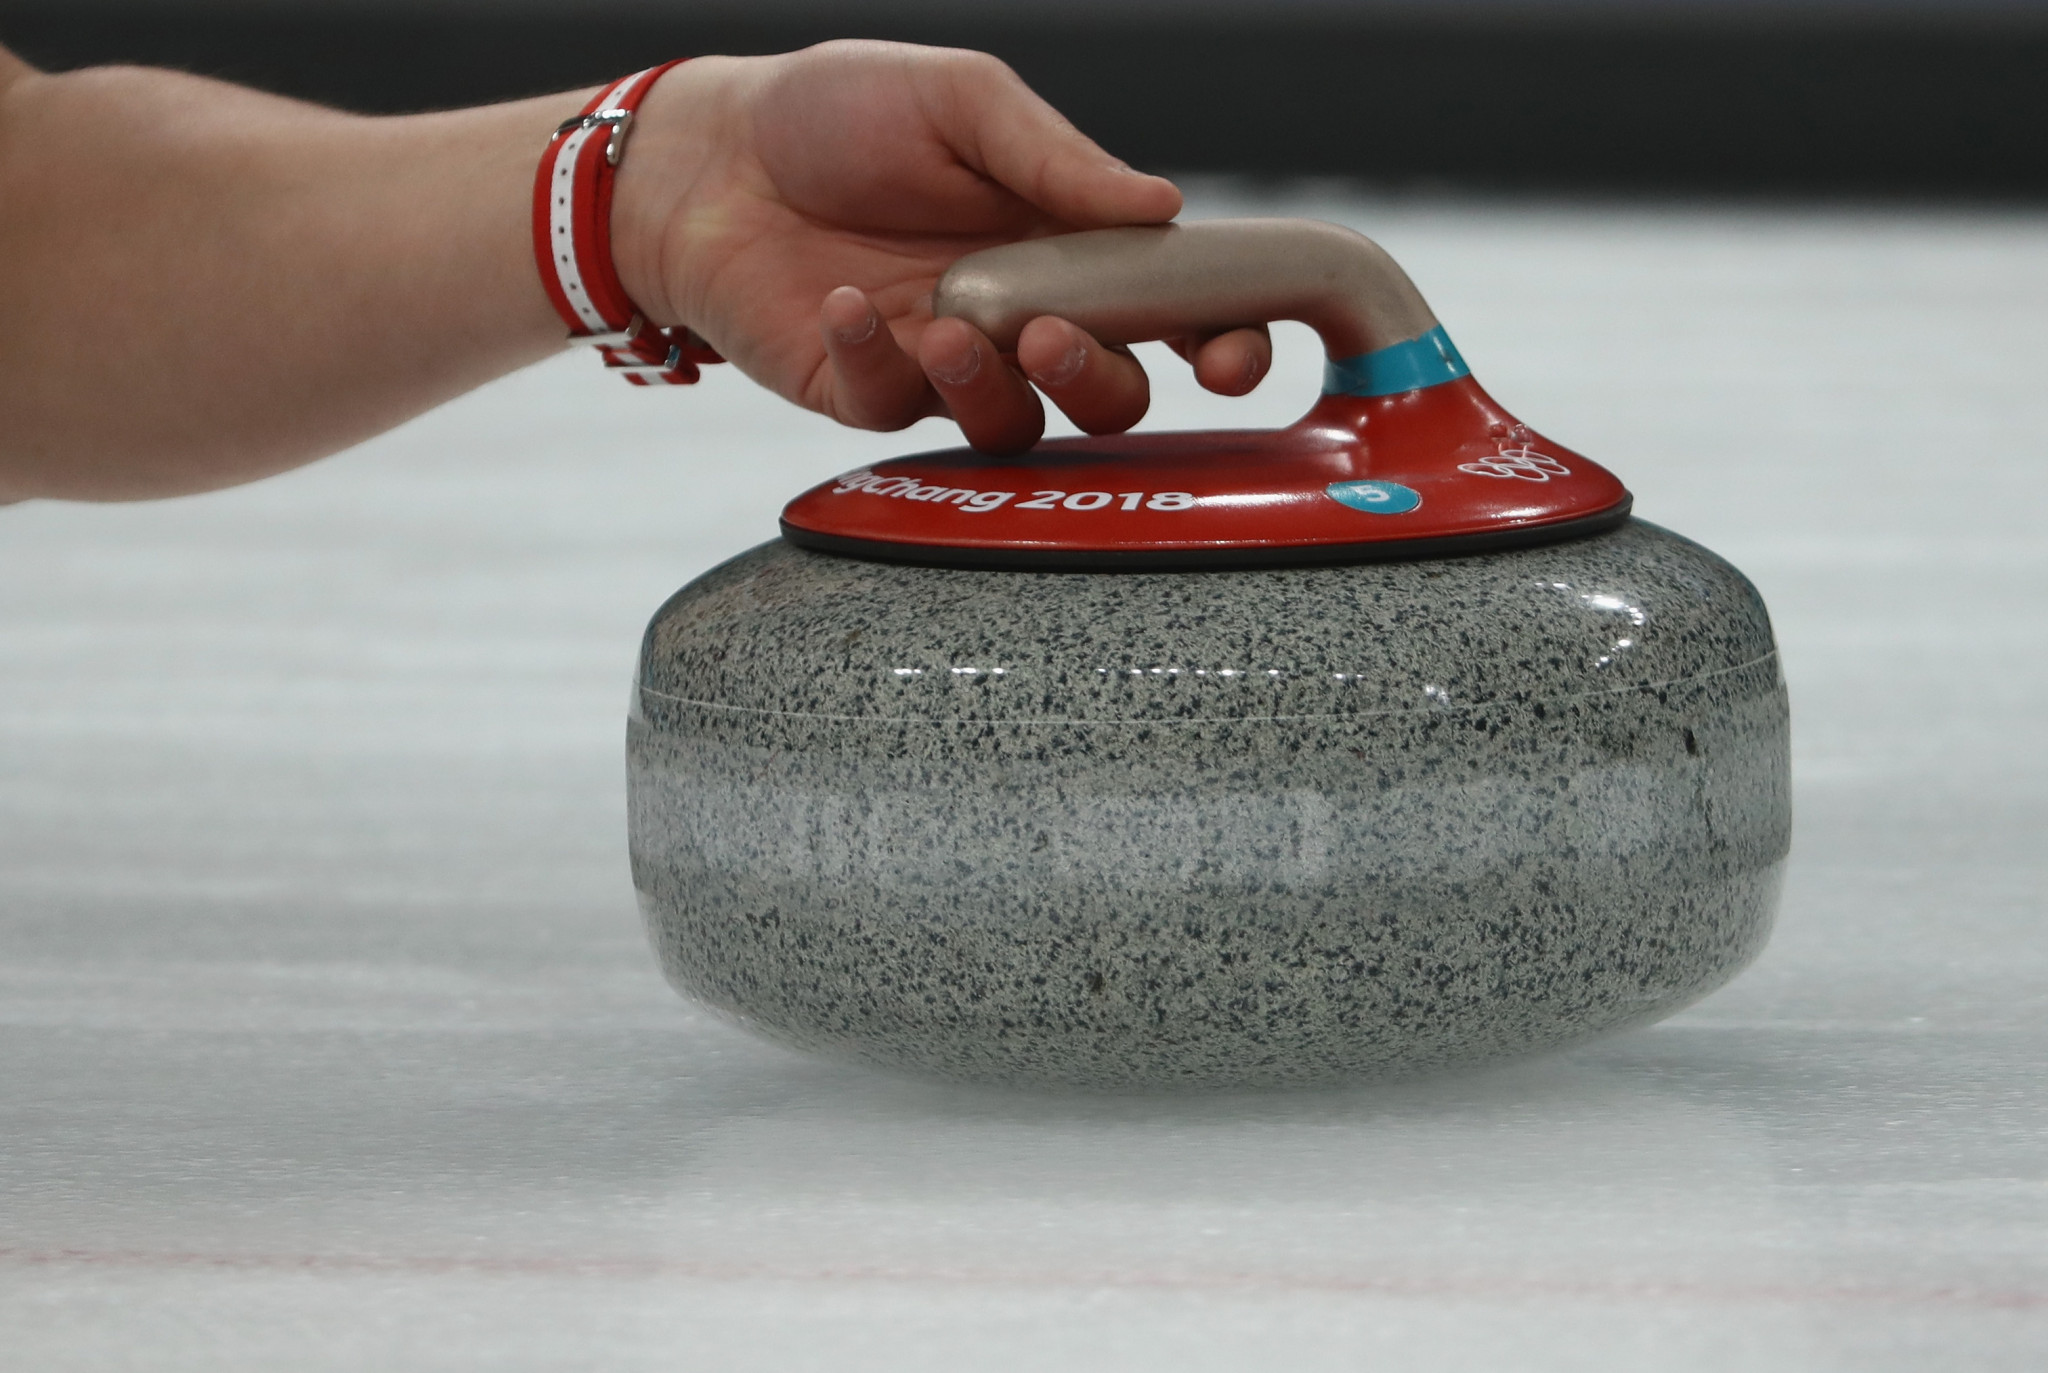 World Curling Federation and Infront extend partnership to 2022